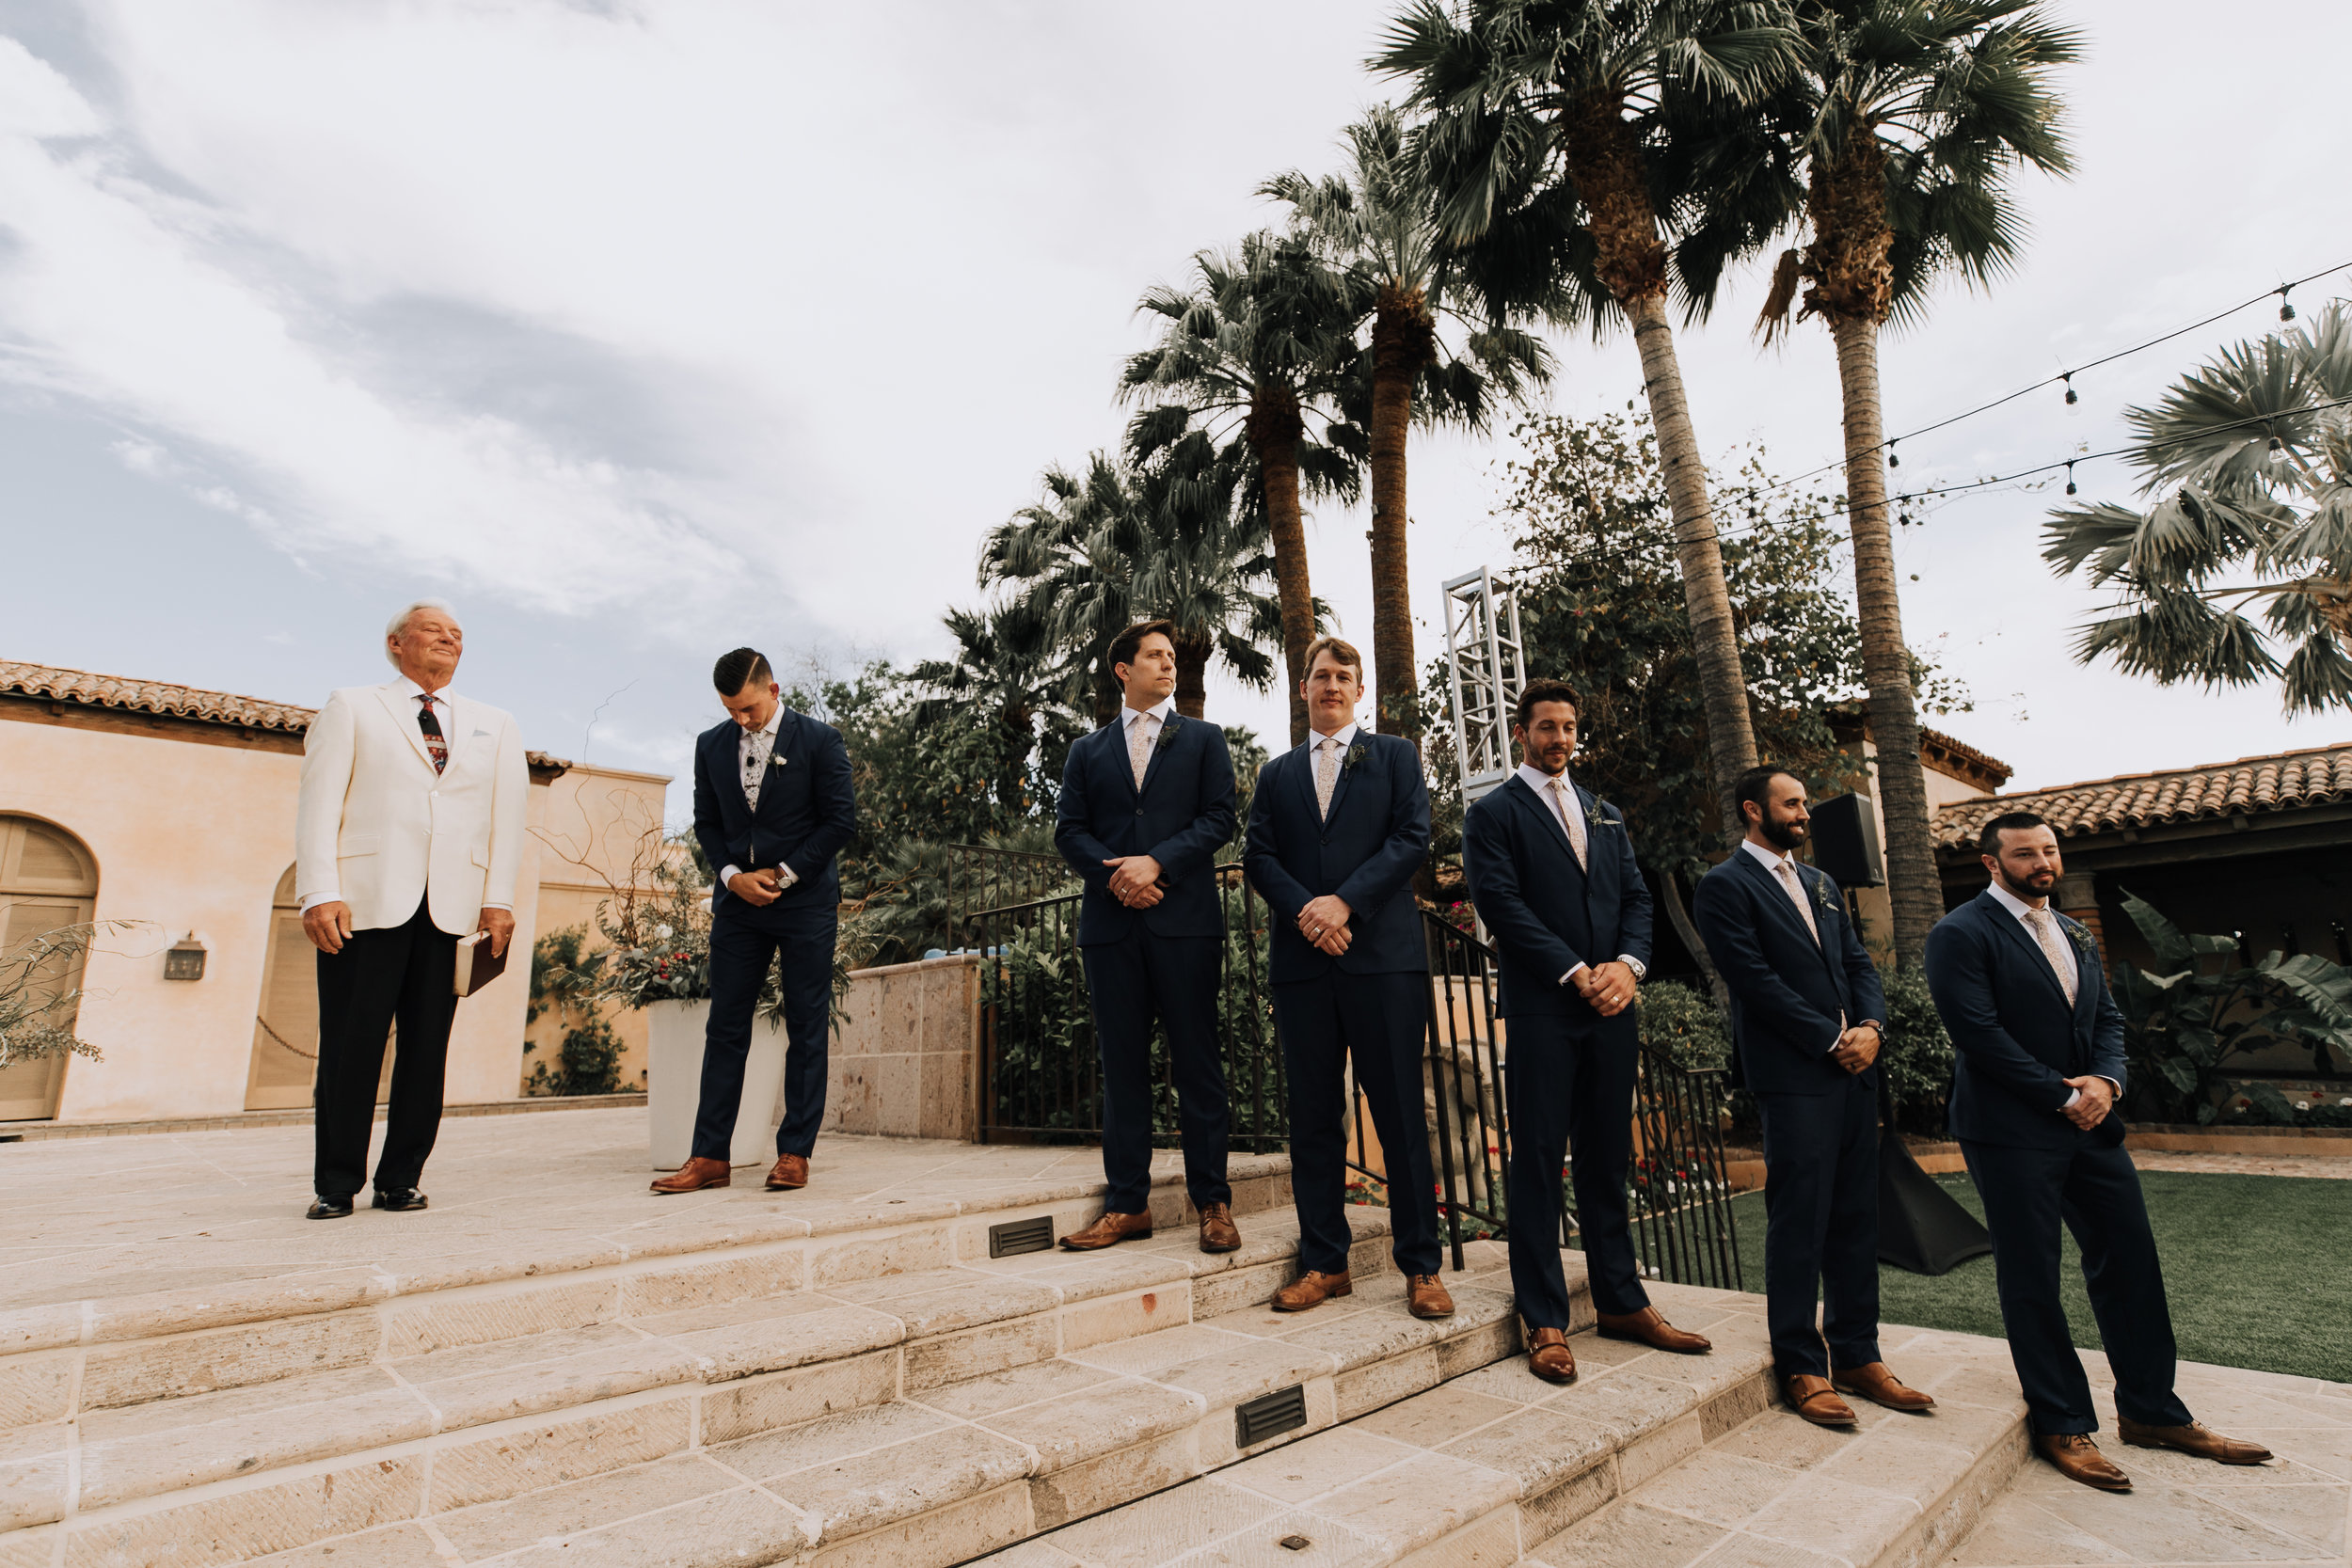 Groom and groomsmen at Ceremony